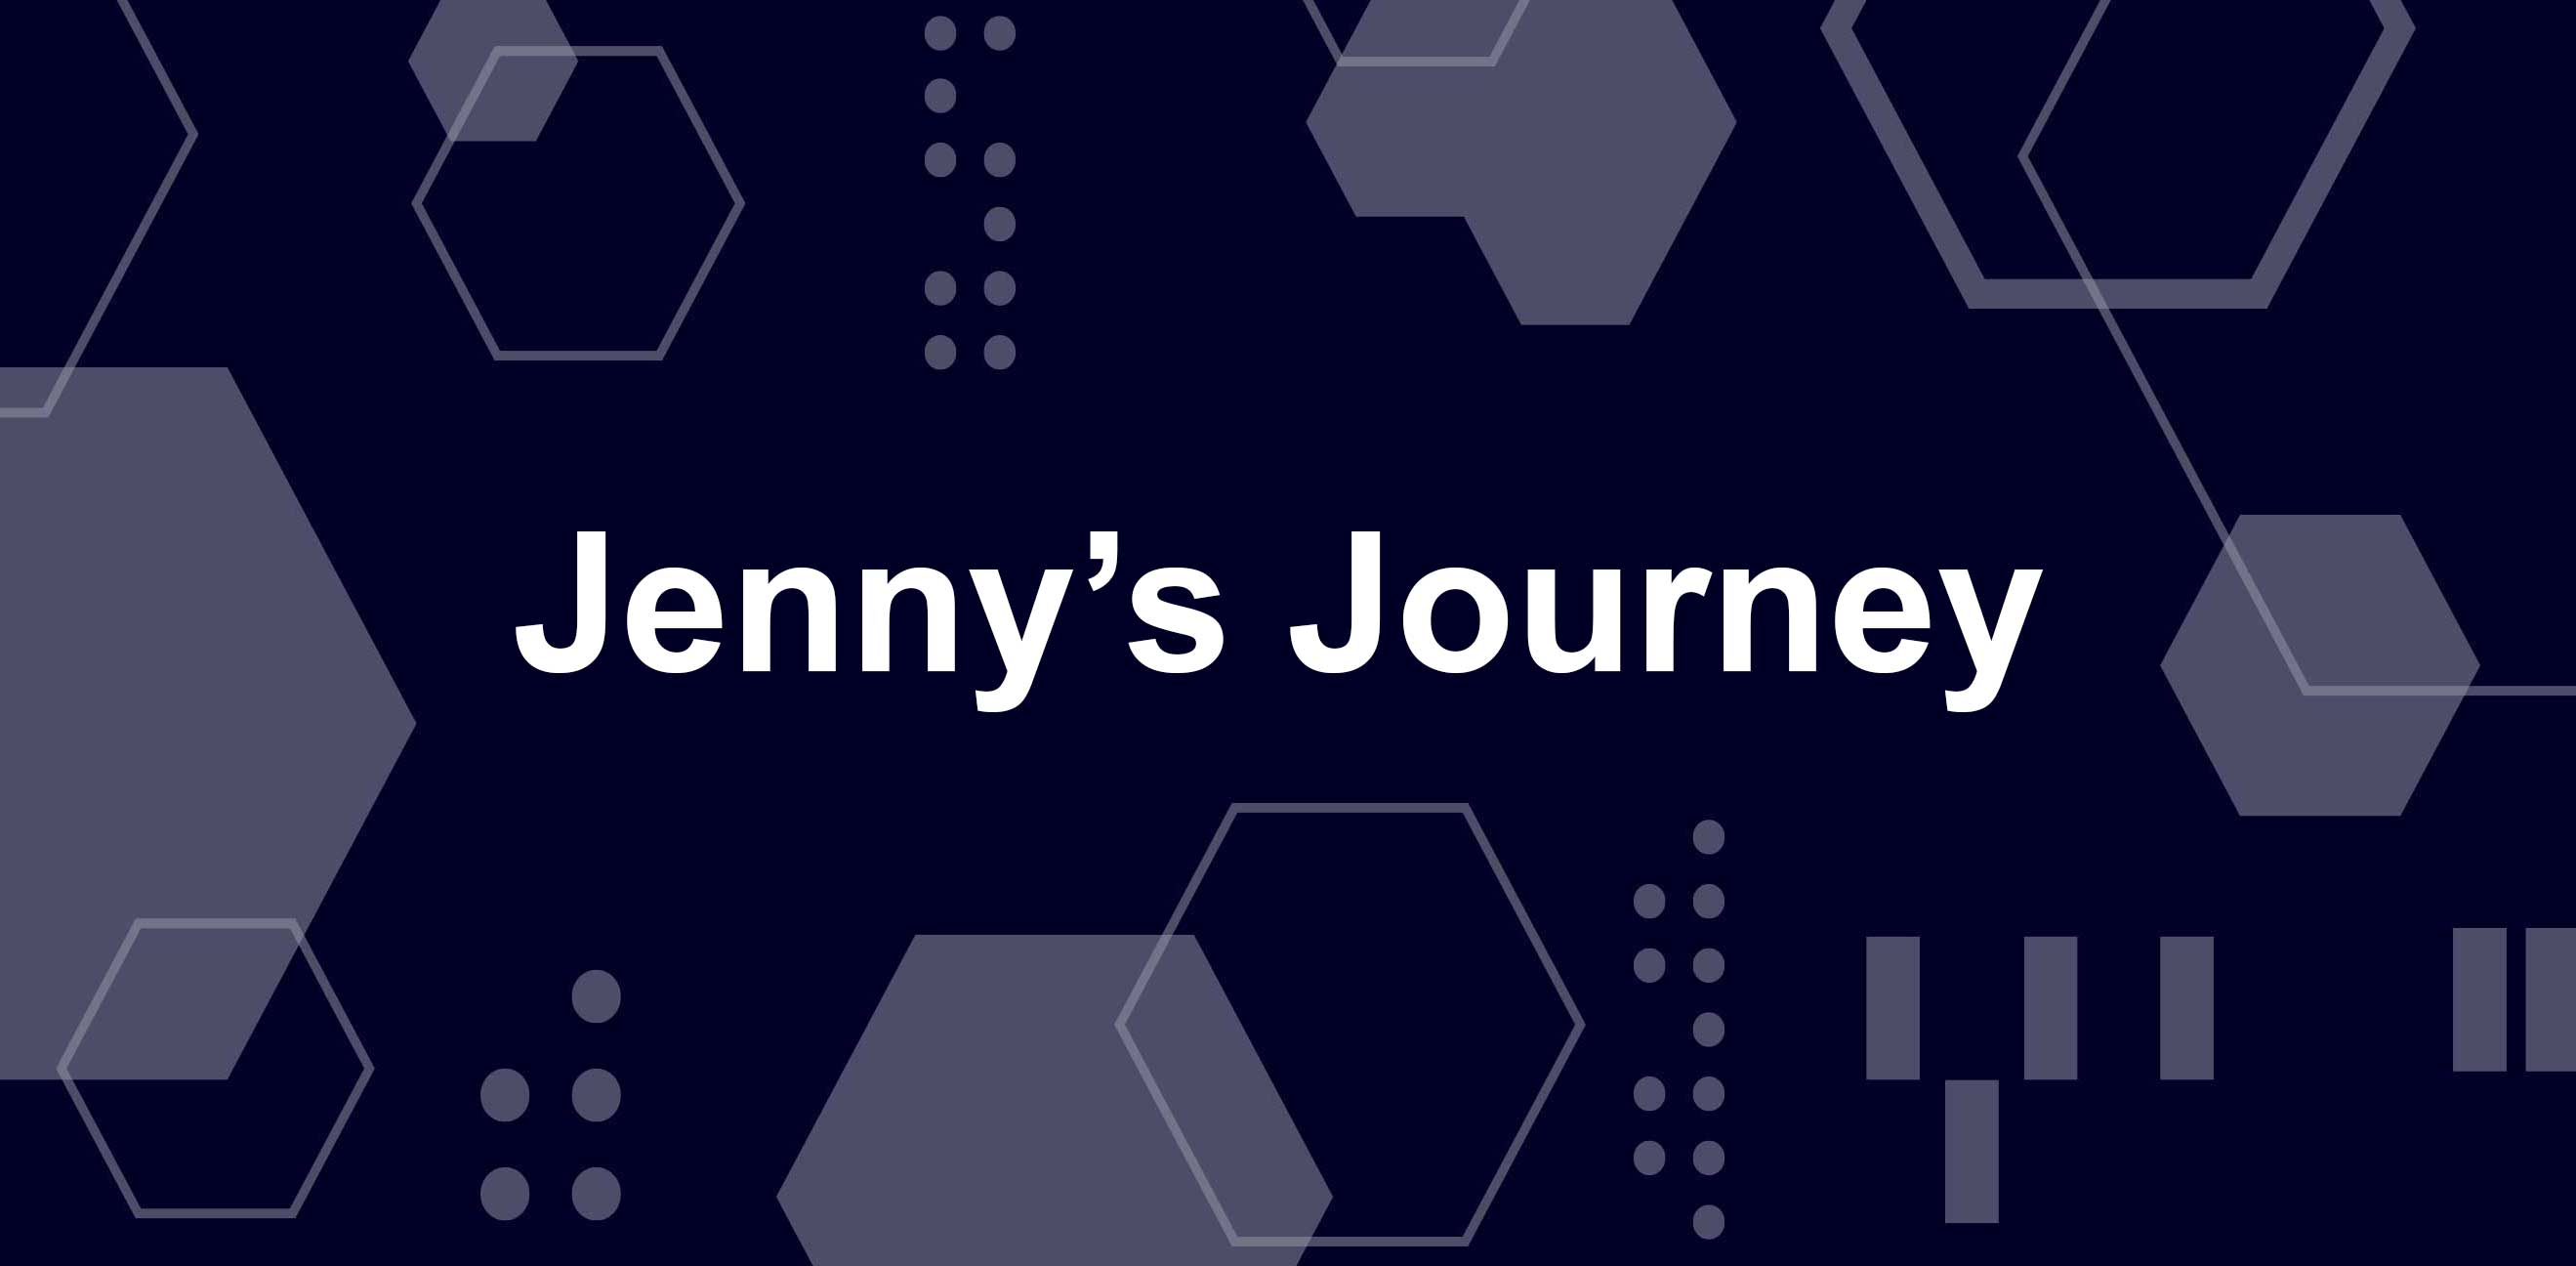 Jenny's Journey in white letters over blue and white geometric pattern